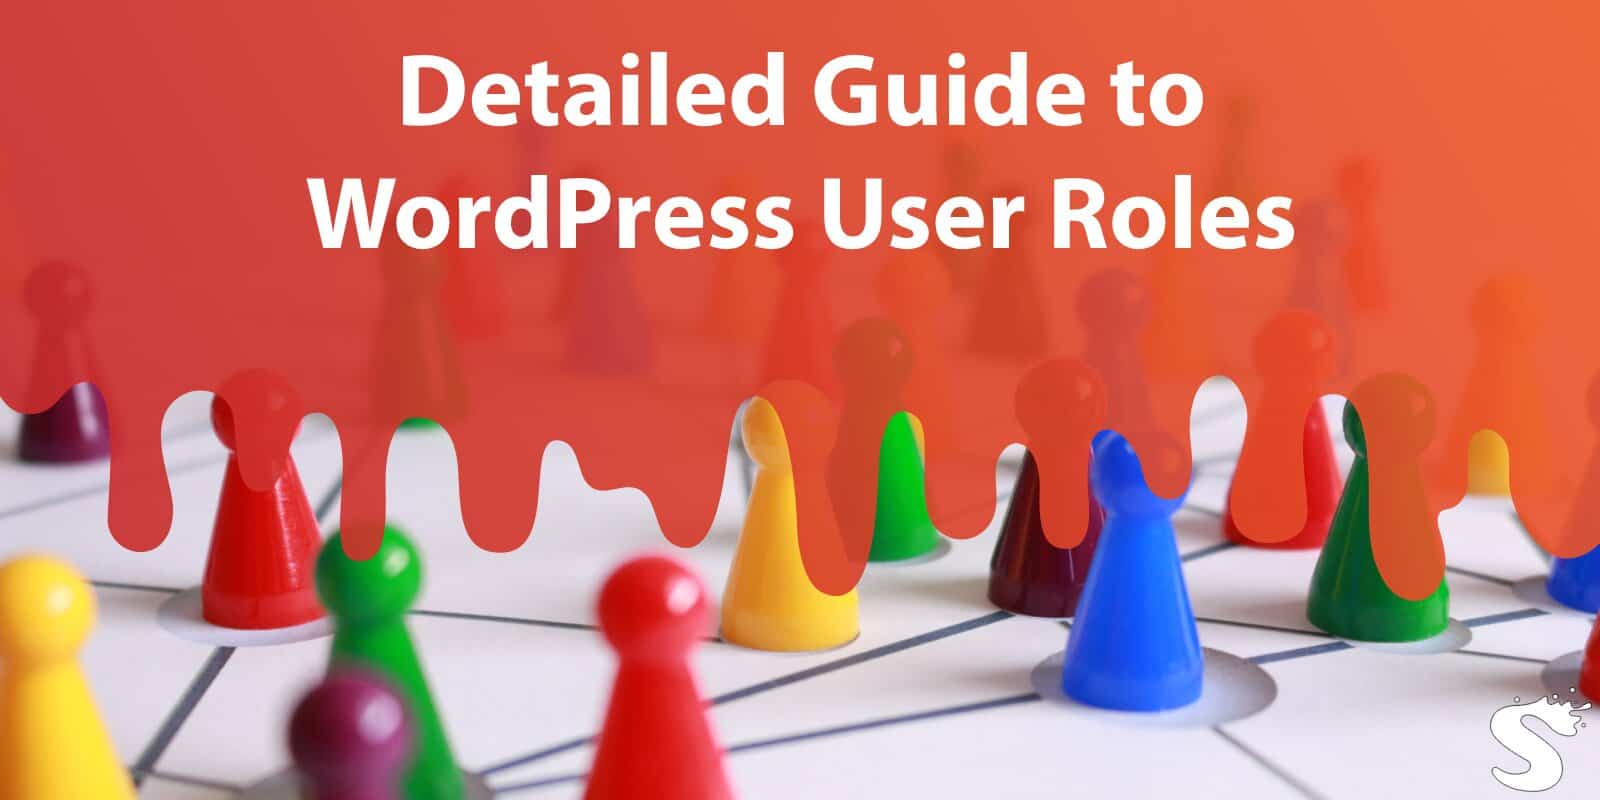 Detailed Guide to WordPress User Roles